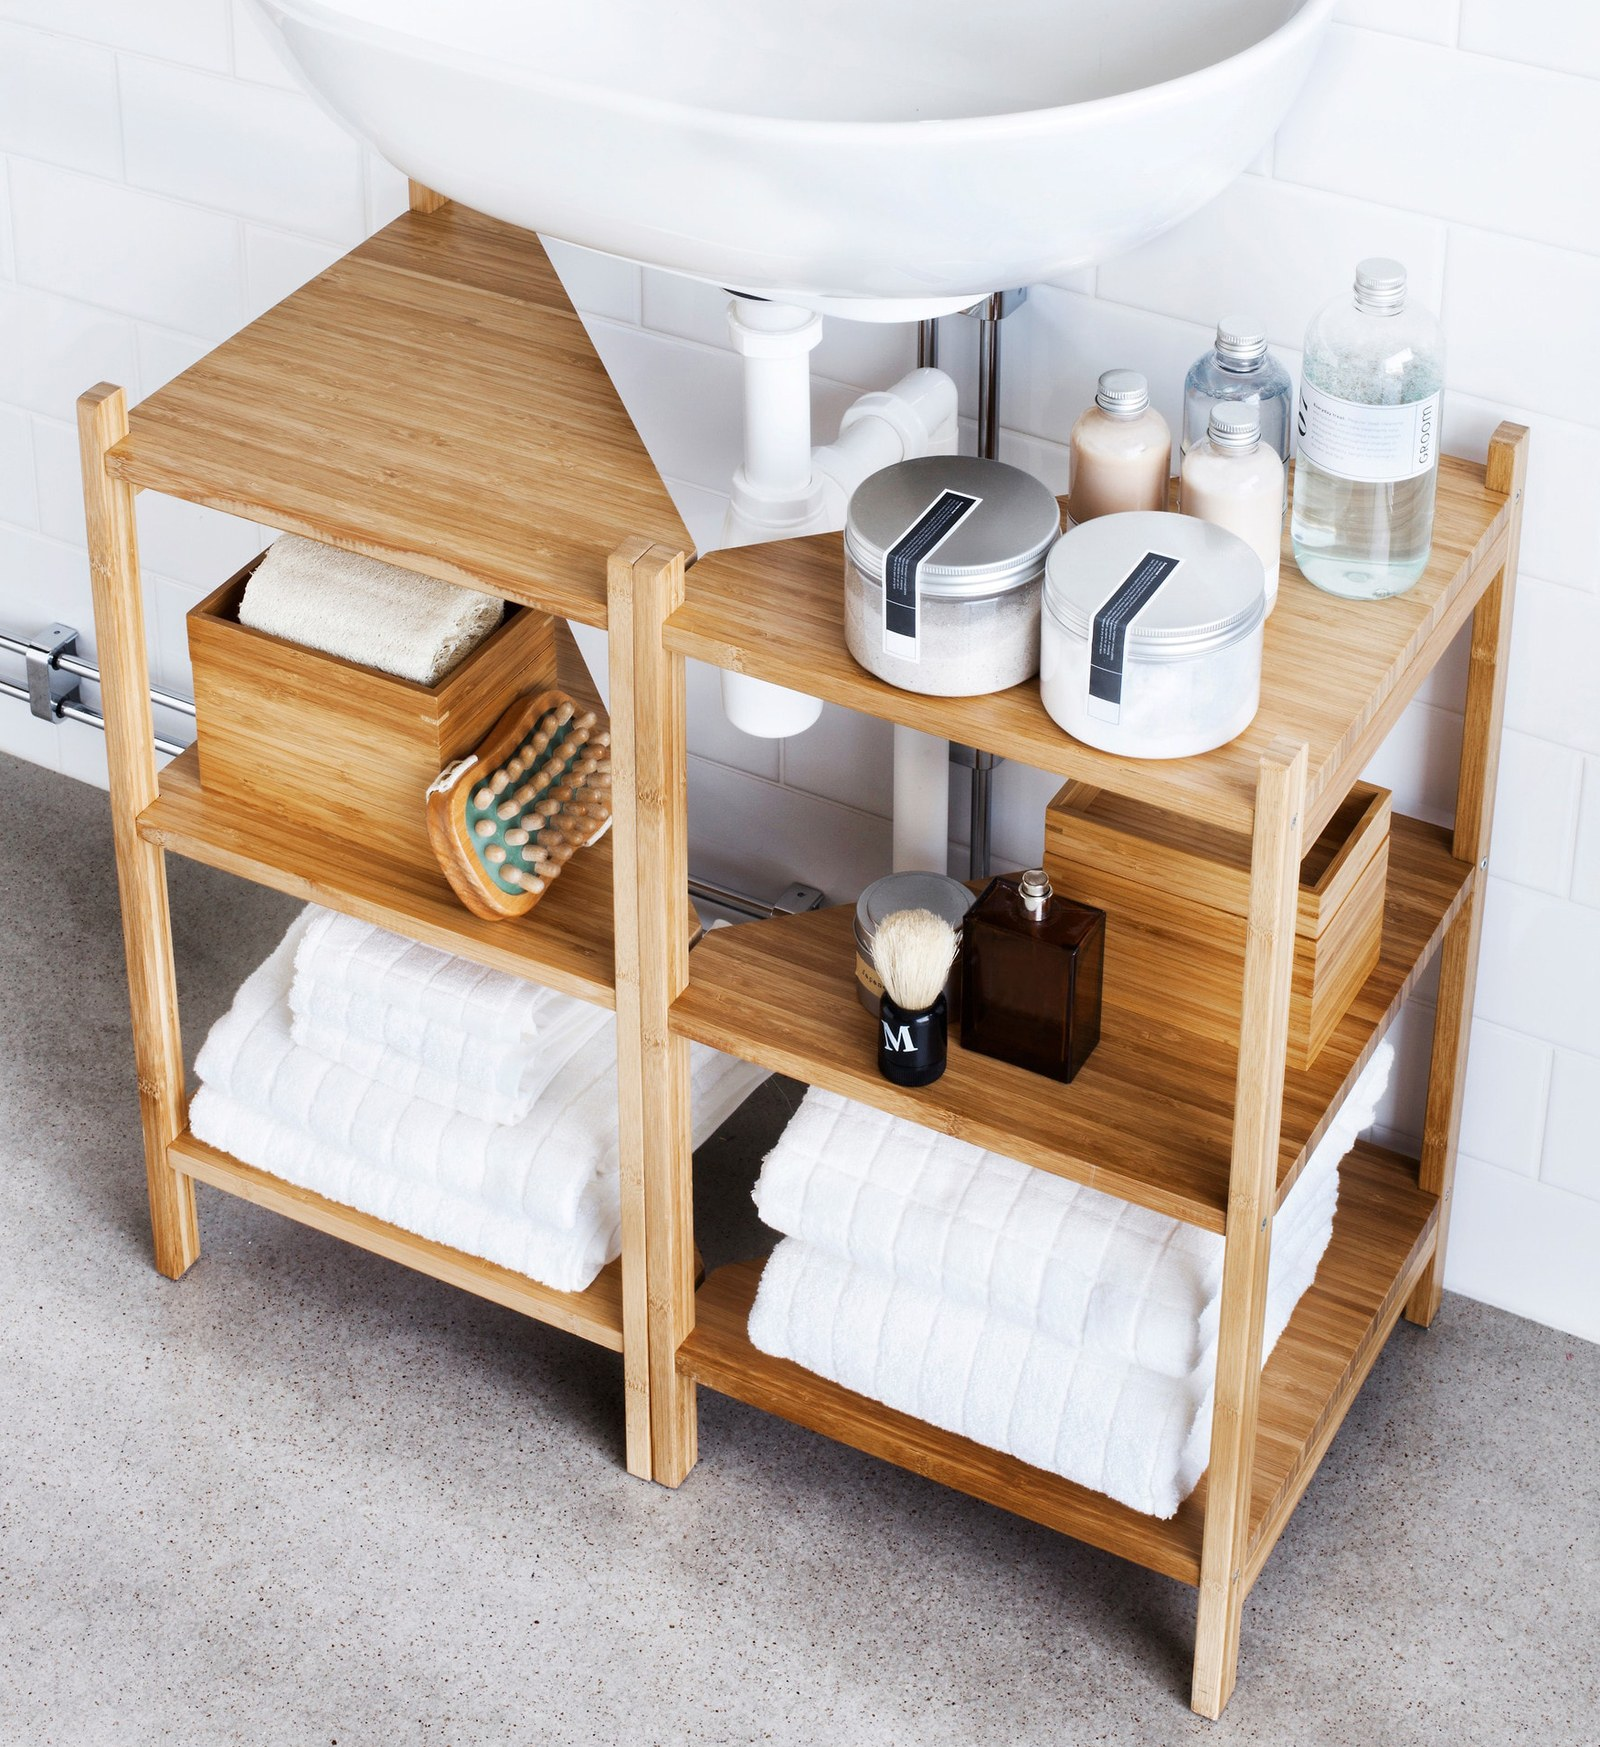 racks or shelves for bathroom